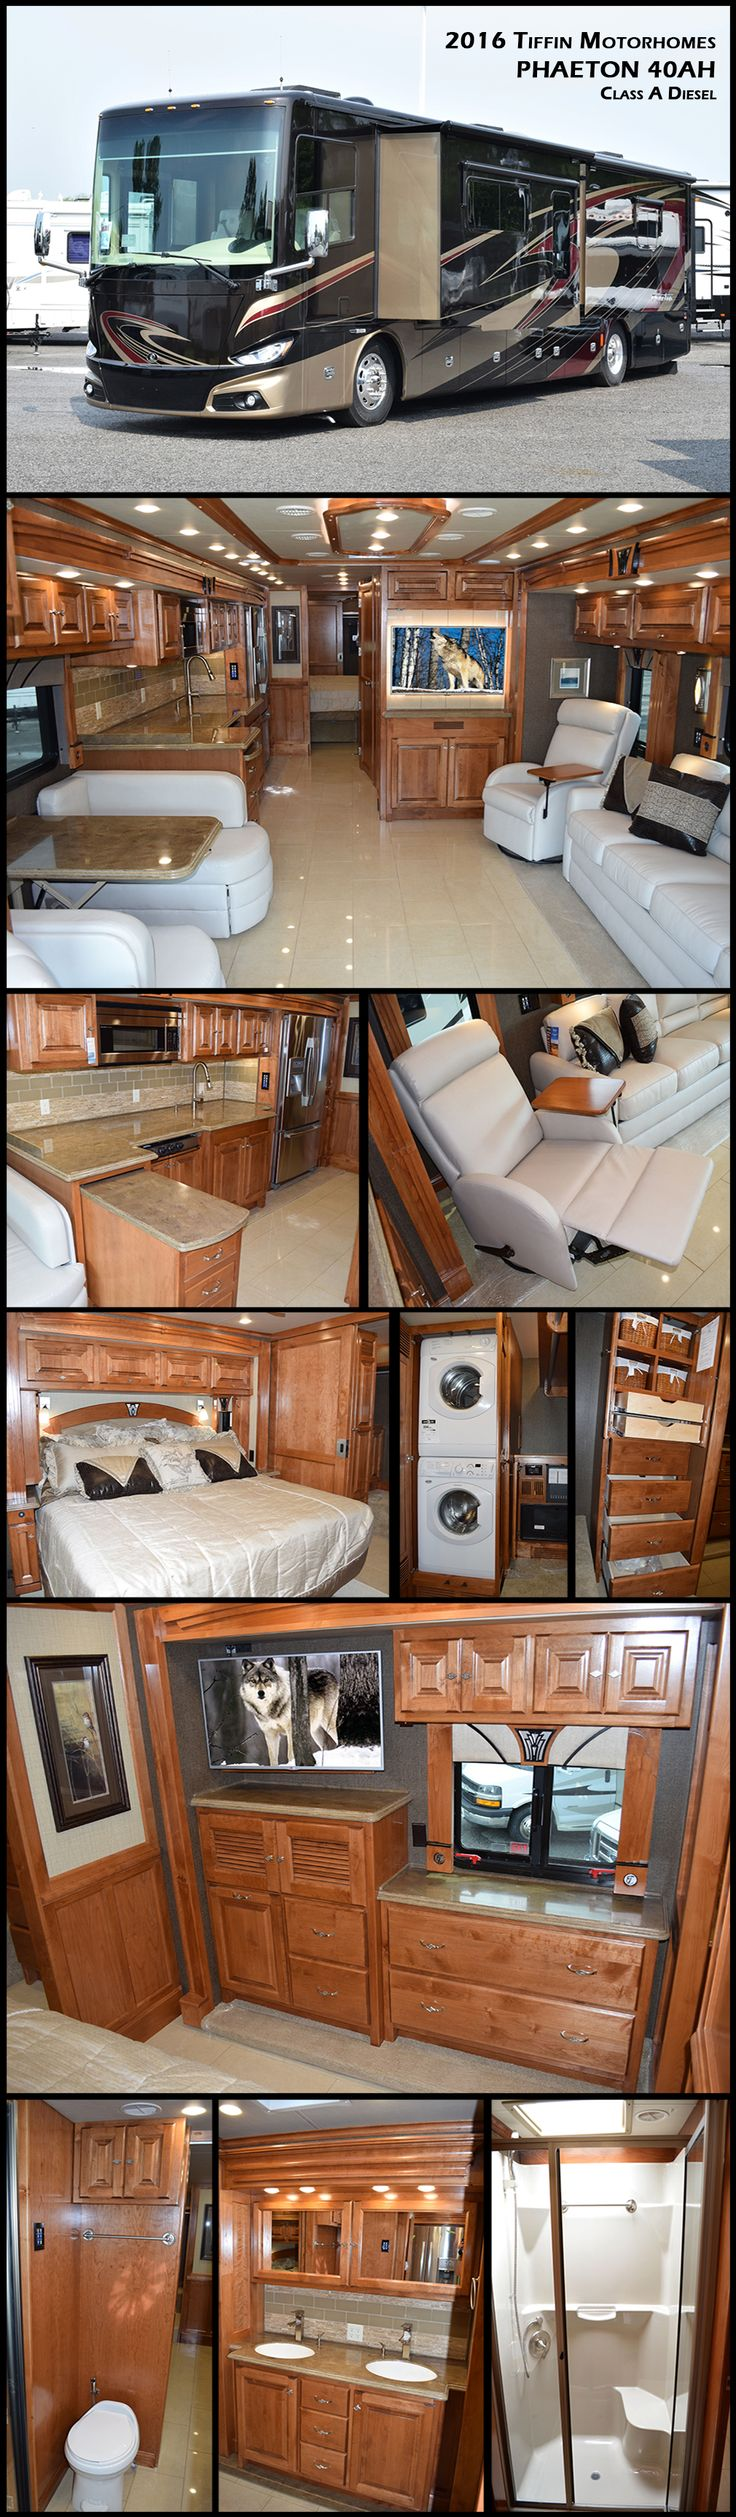 Best 25 Luxury Rv Ideas On Pinterest Luxury Motors Luxury Rv Living And Motorhome Parts